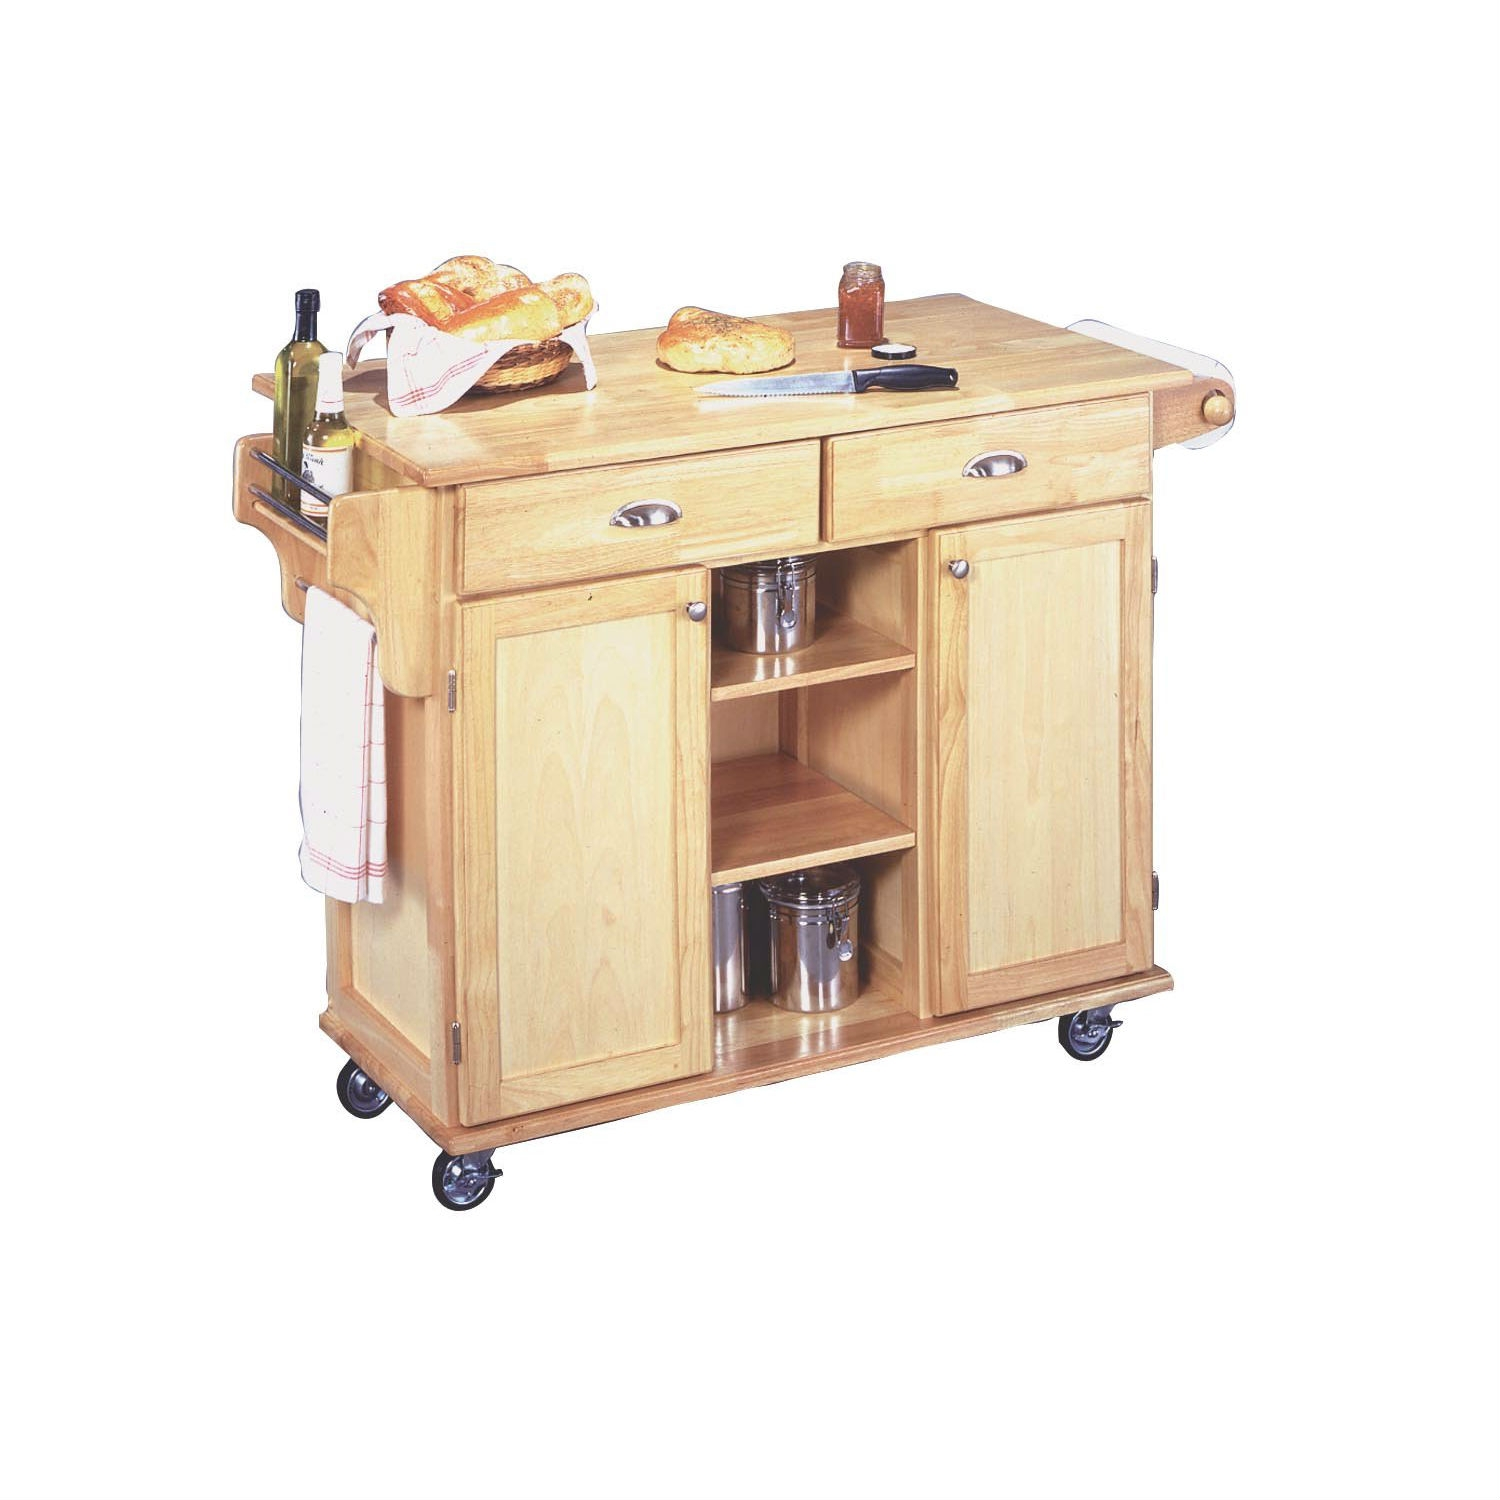 This Natural Wood Finish Kitchen Island Cart with Locking Casters has a clean style and natural finish that provides culinary function to any kitchen. It features a solid wood top, spice and condiment caddy, towel bar and paper towel holder. for storage needs the card offers both convenient open storage with fixed shelving and neat concealed storage with two utility drawers and two cabinets, each having an adjustable shelf. Heavy duty locking casters provides even greater utility. The cart is constructed from sustainable hardwood and protected by a clear coat finish helping to guard against marring from normal use. Assembly required. Measures 49-3/4-inch width by 24-inch depth by 35-1/4-inch height.